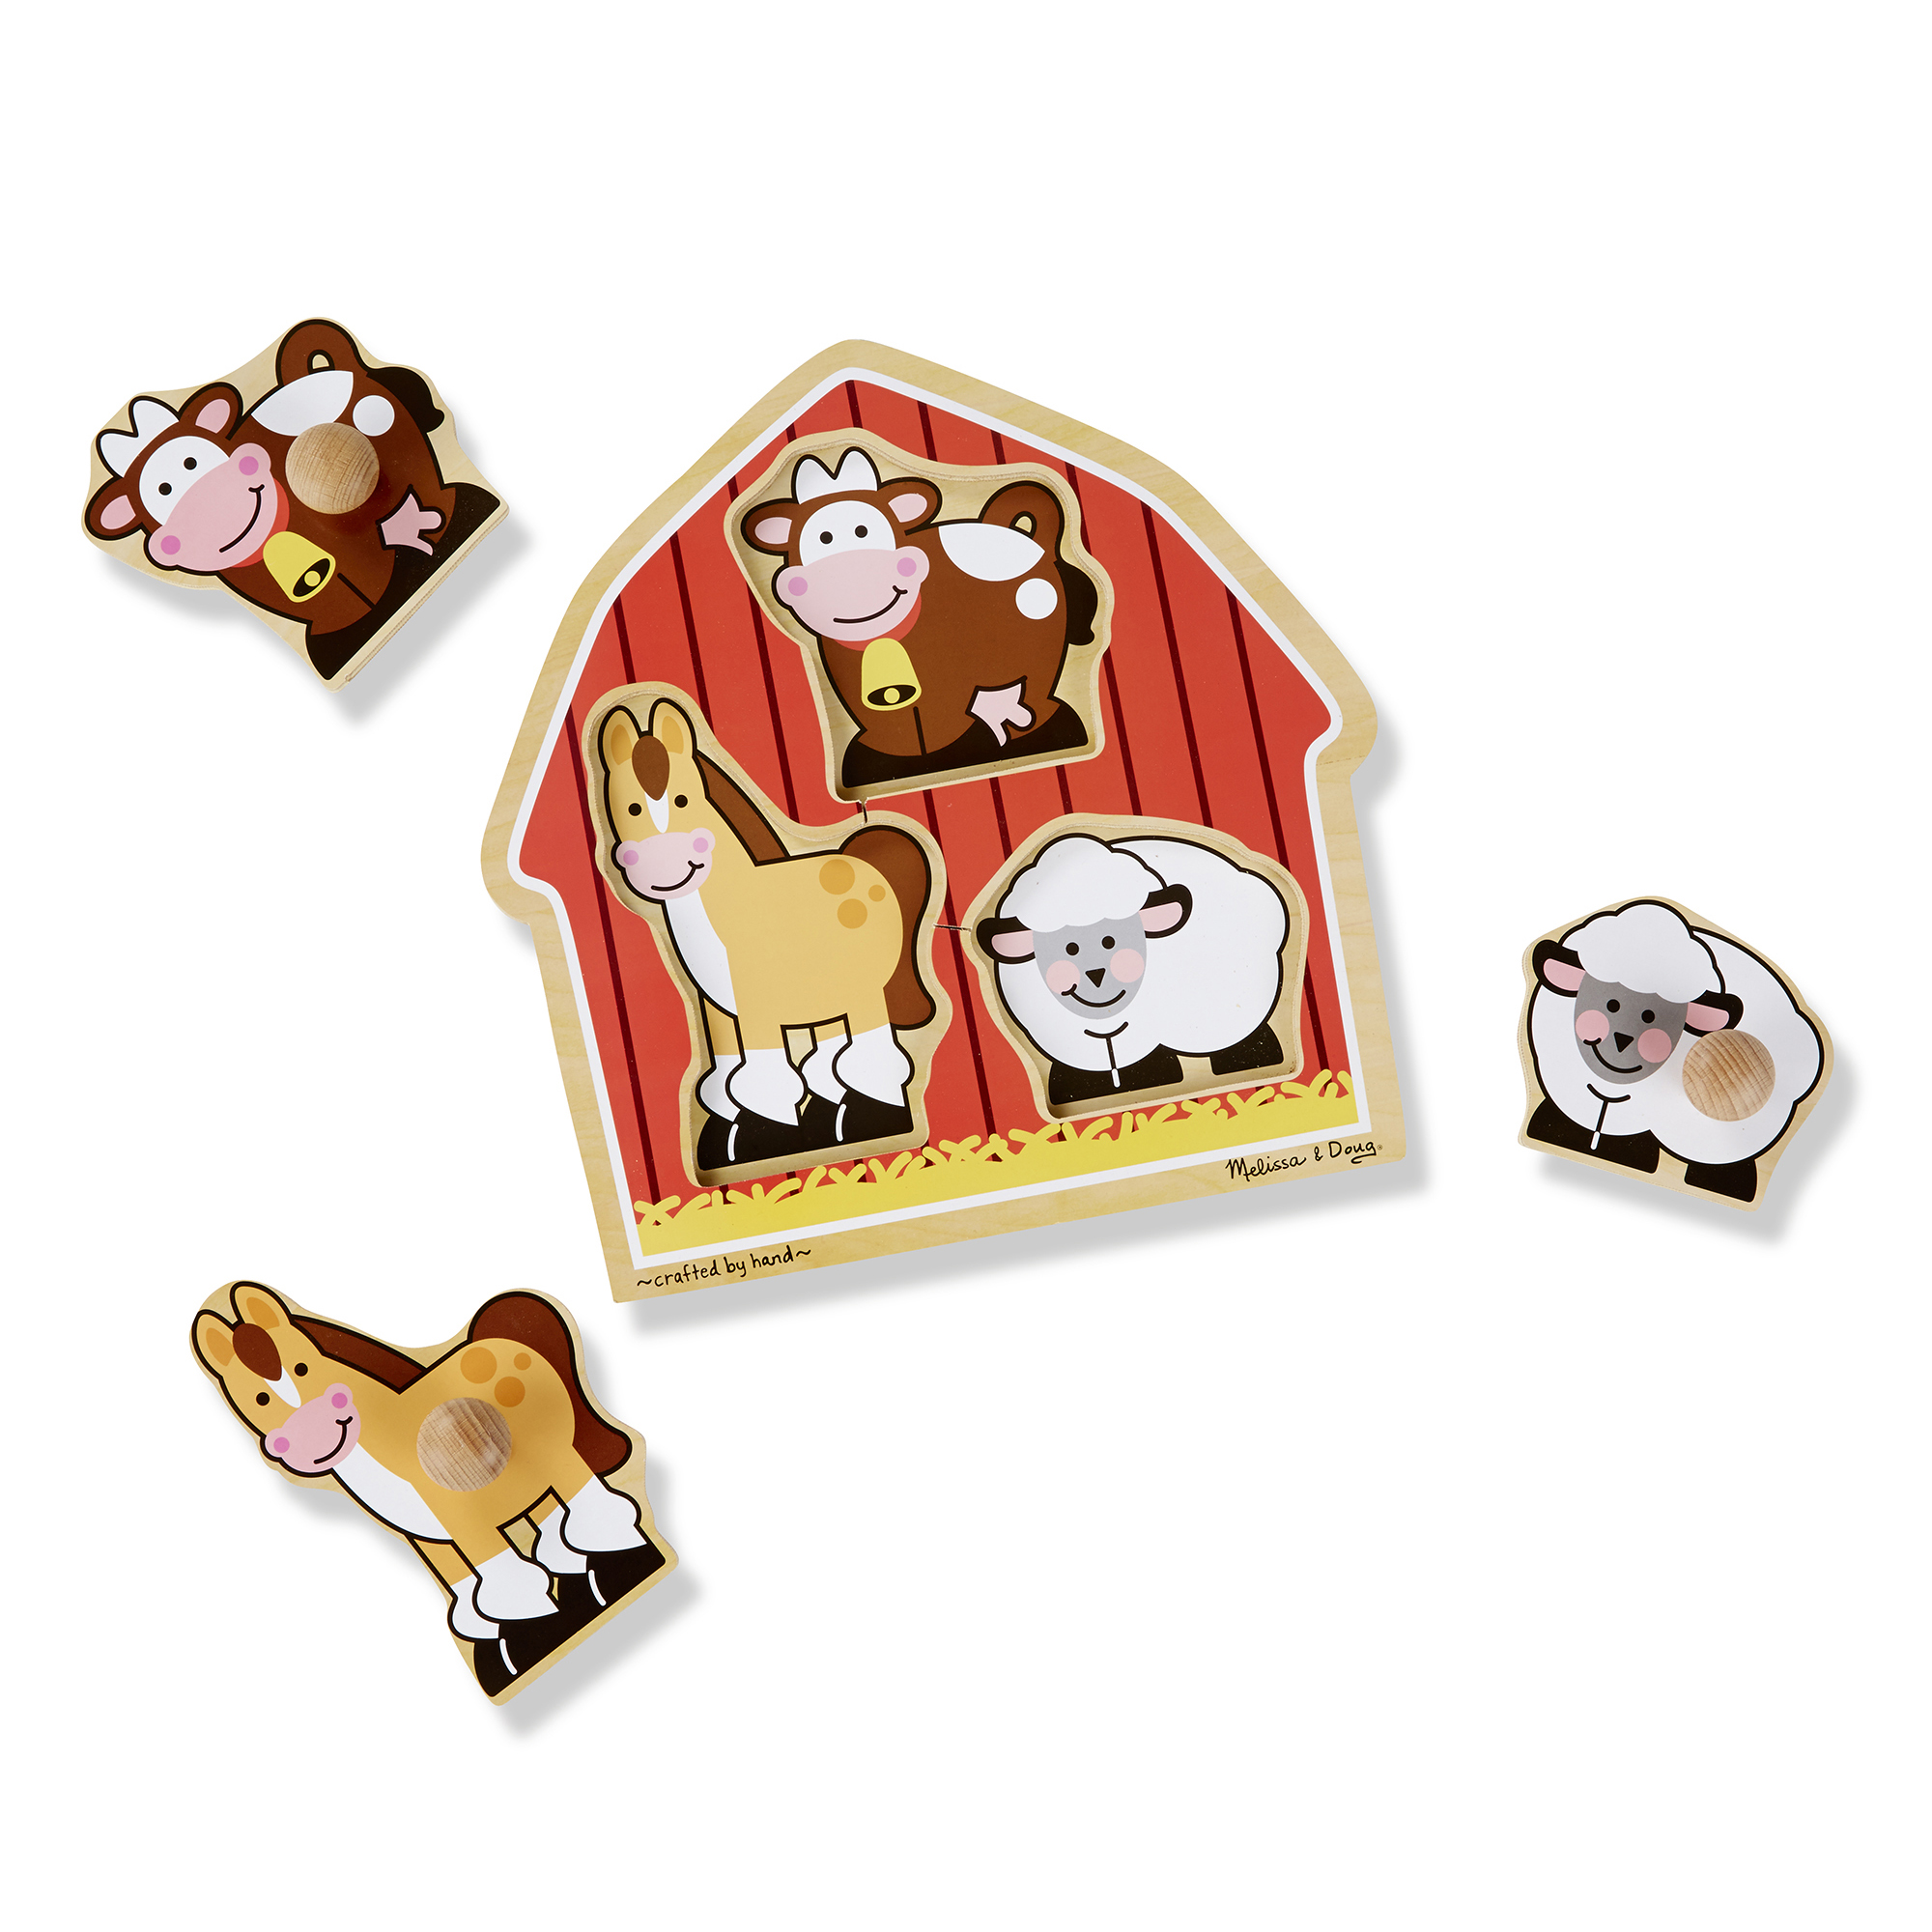 Barnyard Animals Jumbo Knob Puzzle  3 Pieces